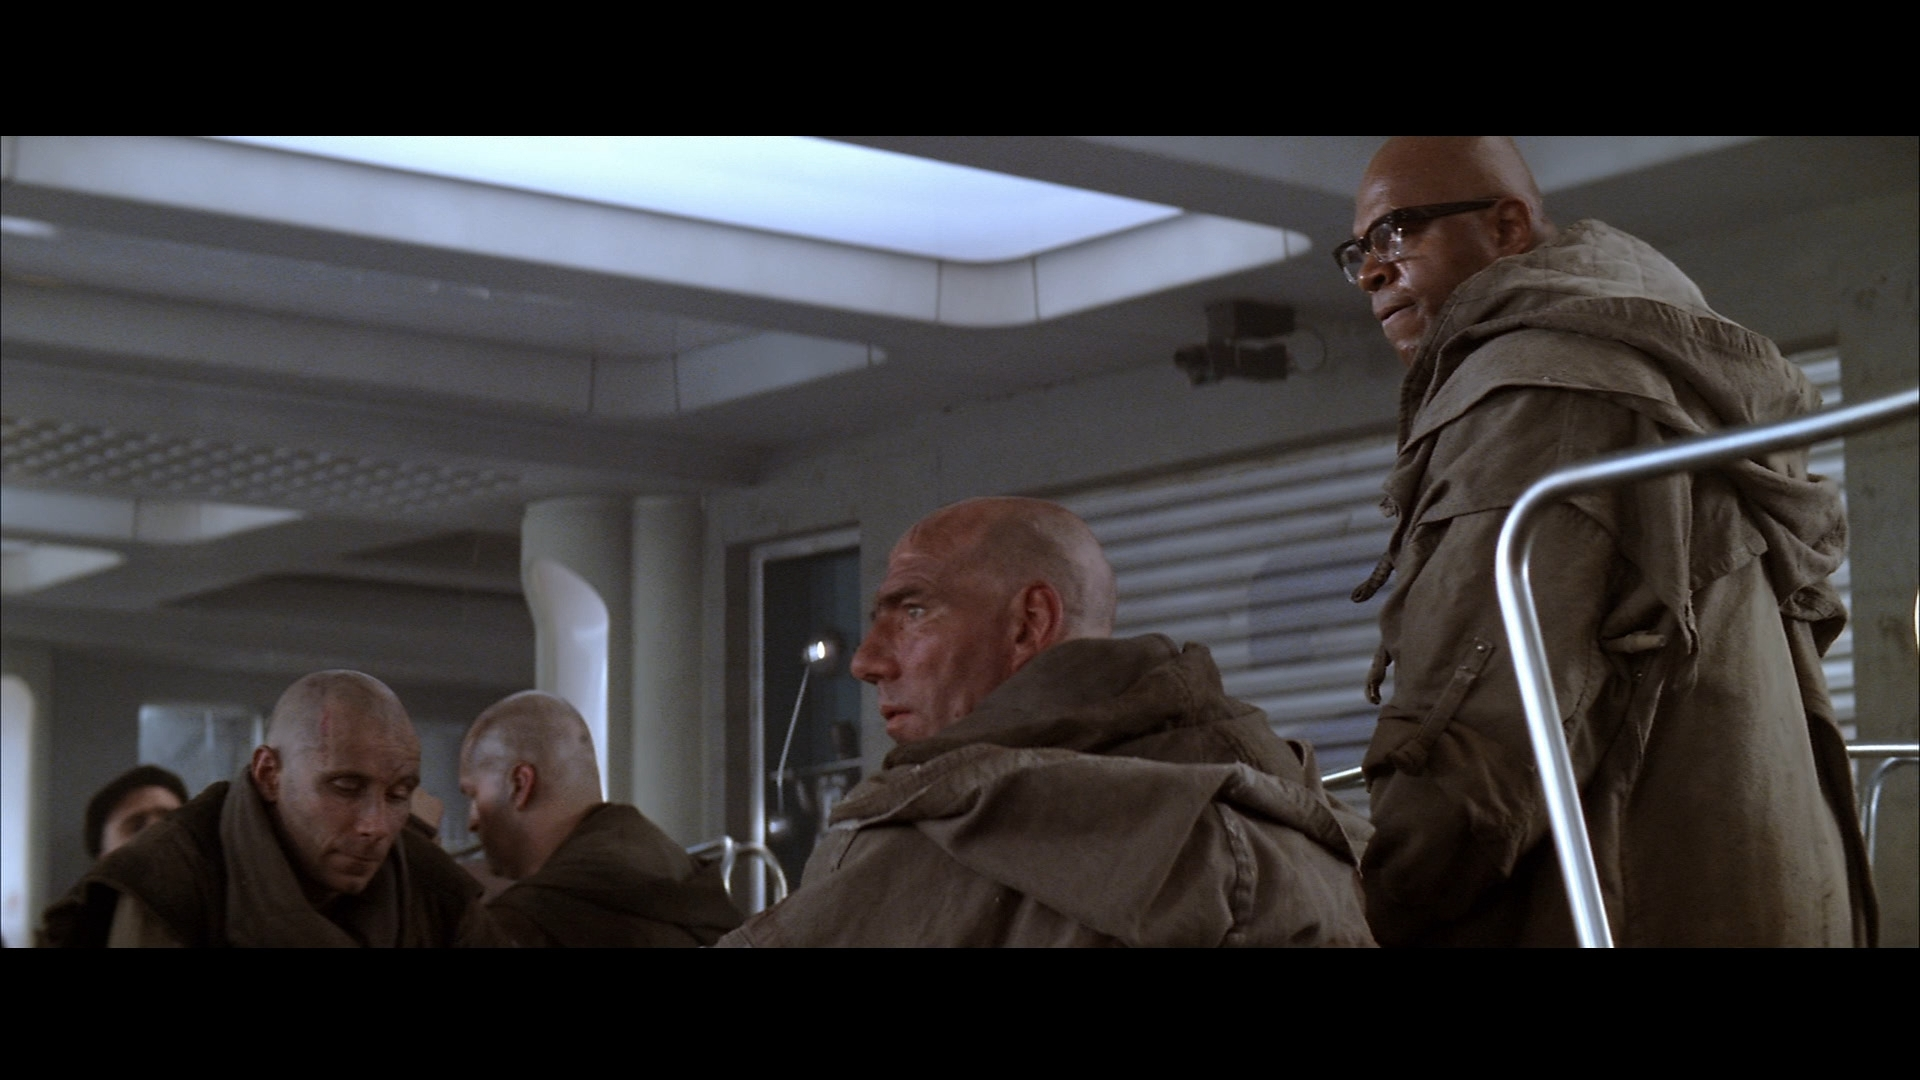 ALIEN3 (1992) - Dillon's (Charles S. Dutton) Complete Costume - Image 16 of 17